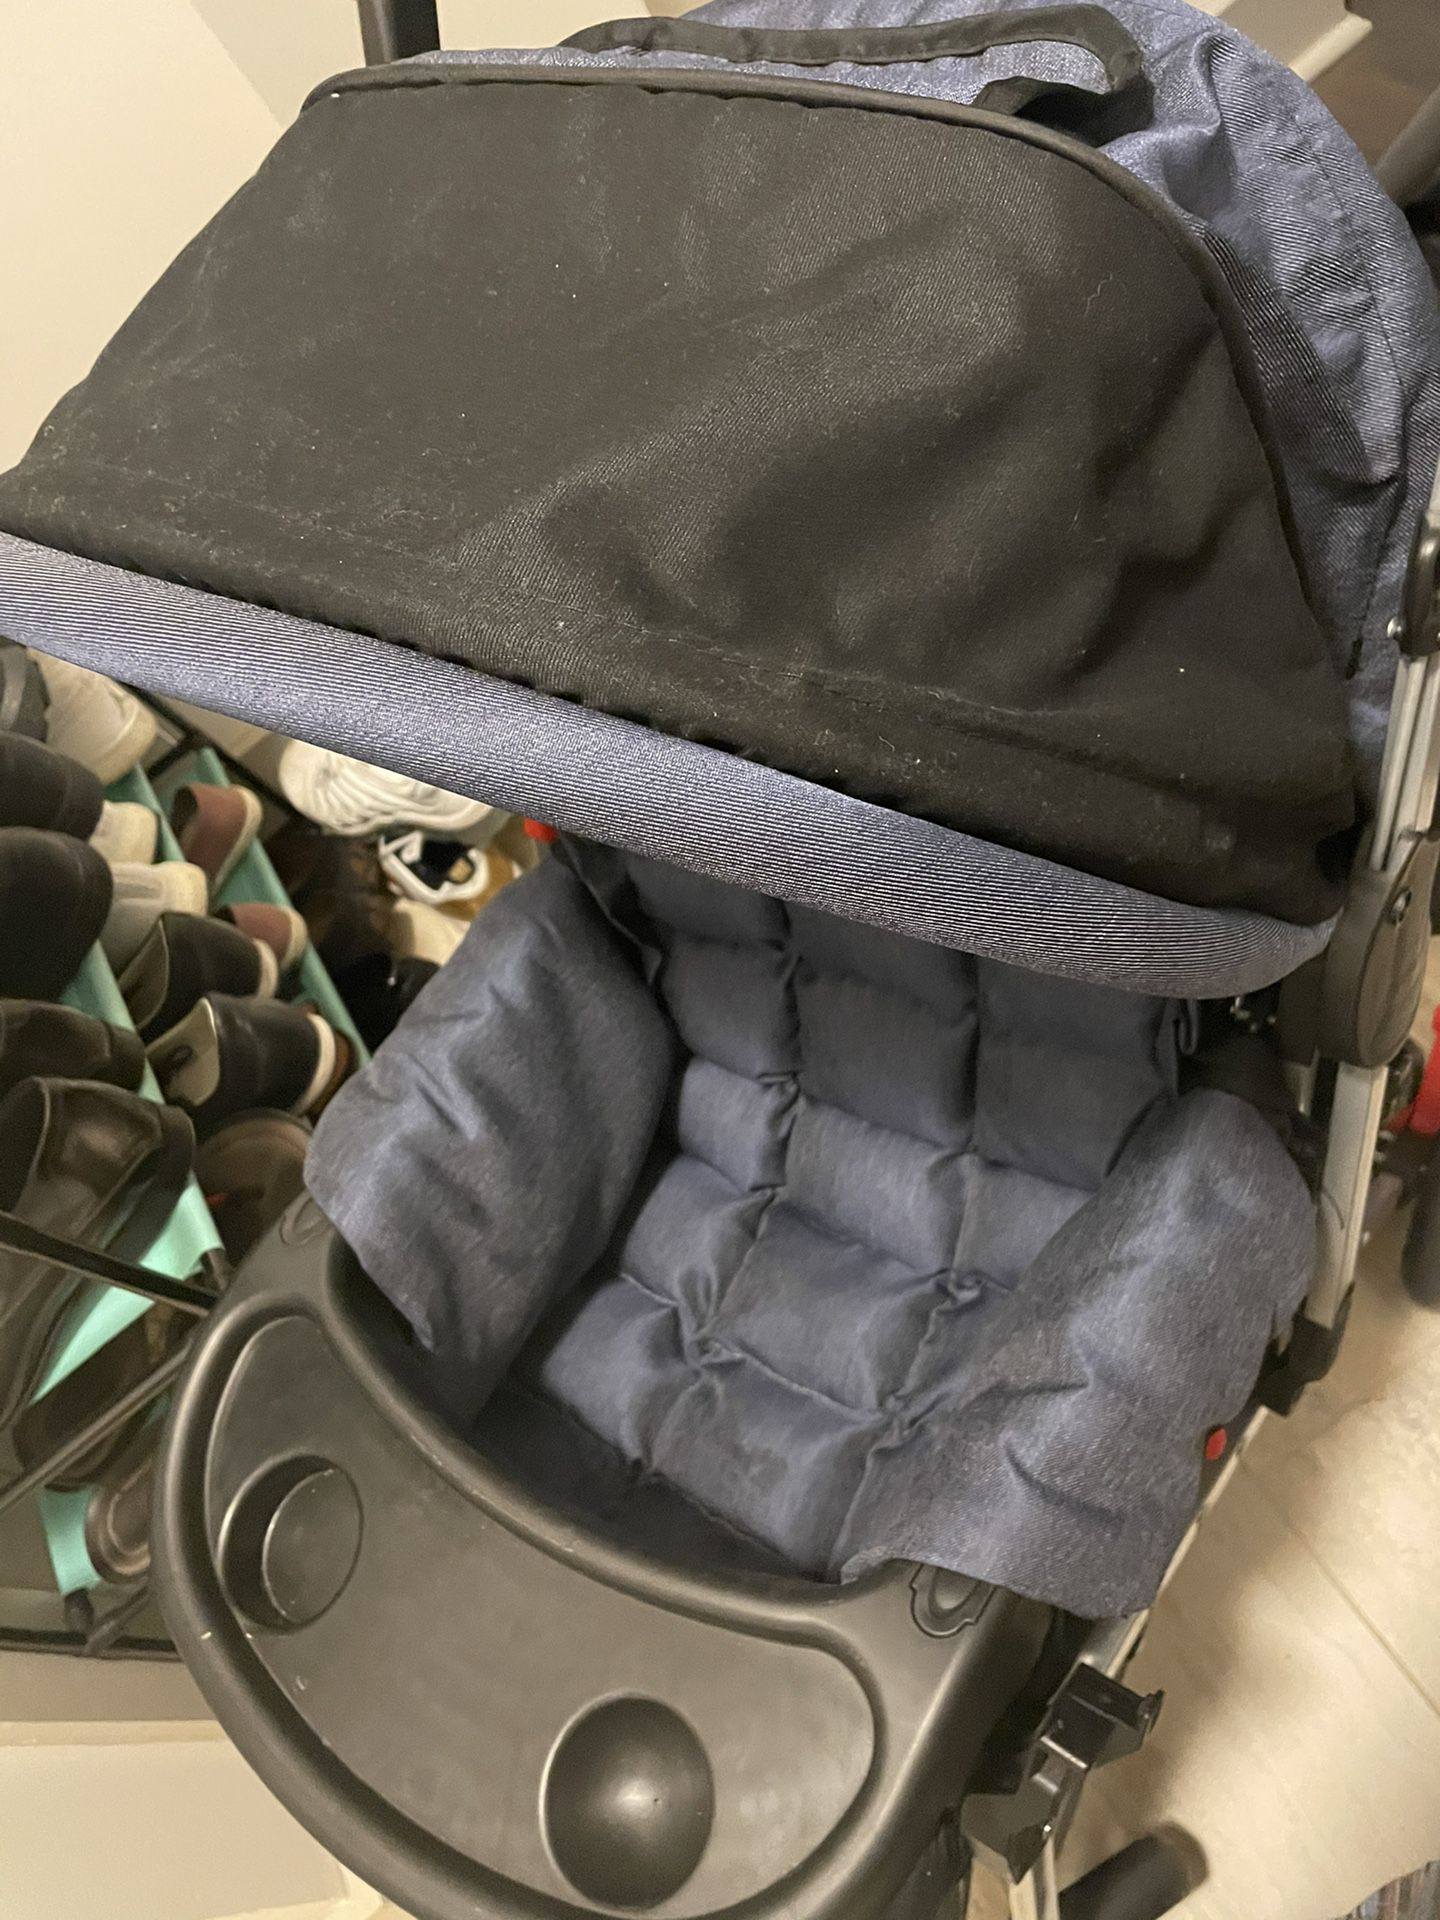 Stroller I'm Perfect Condition